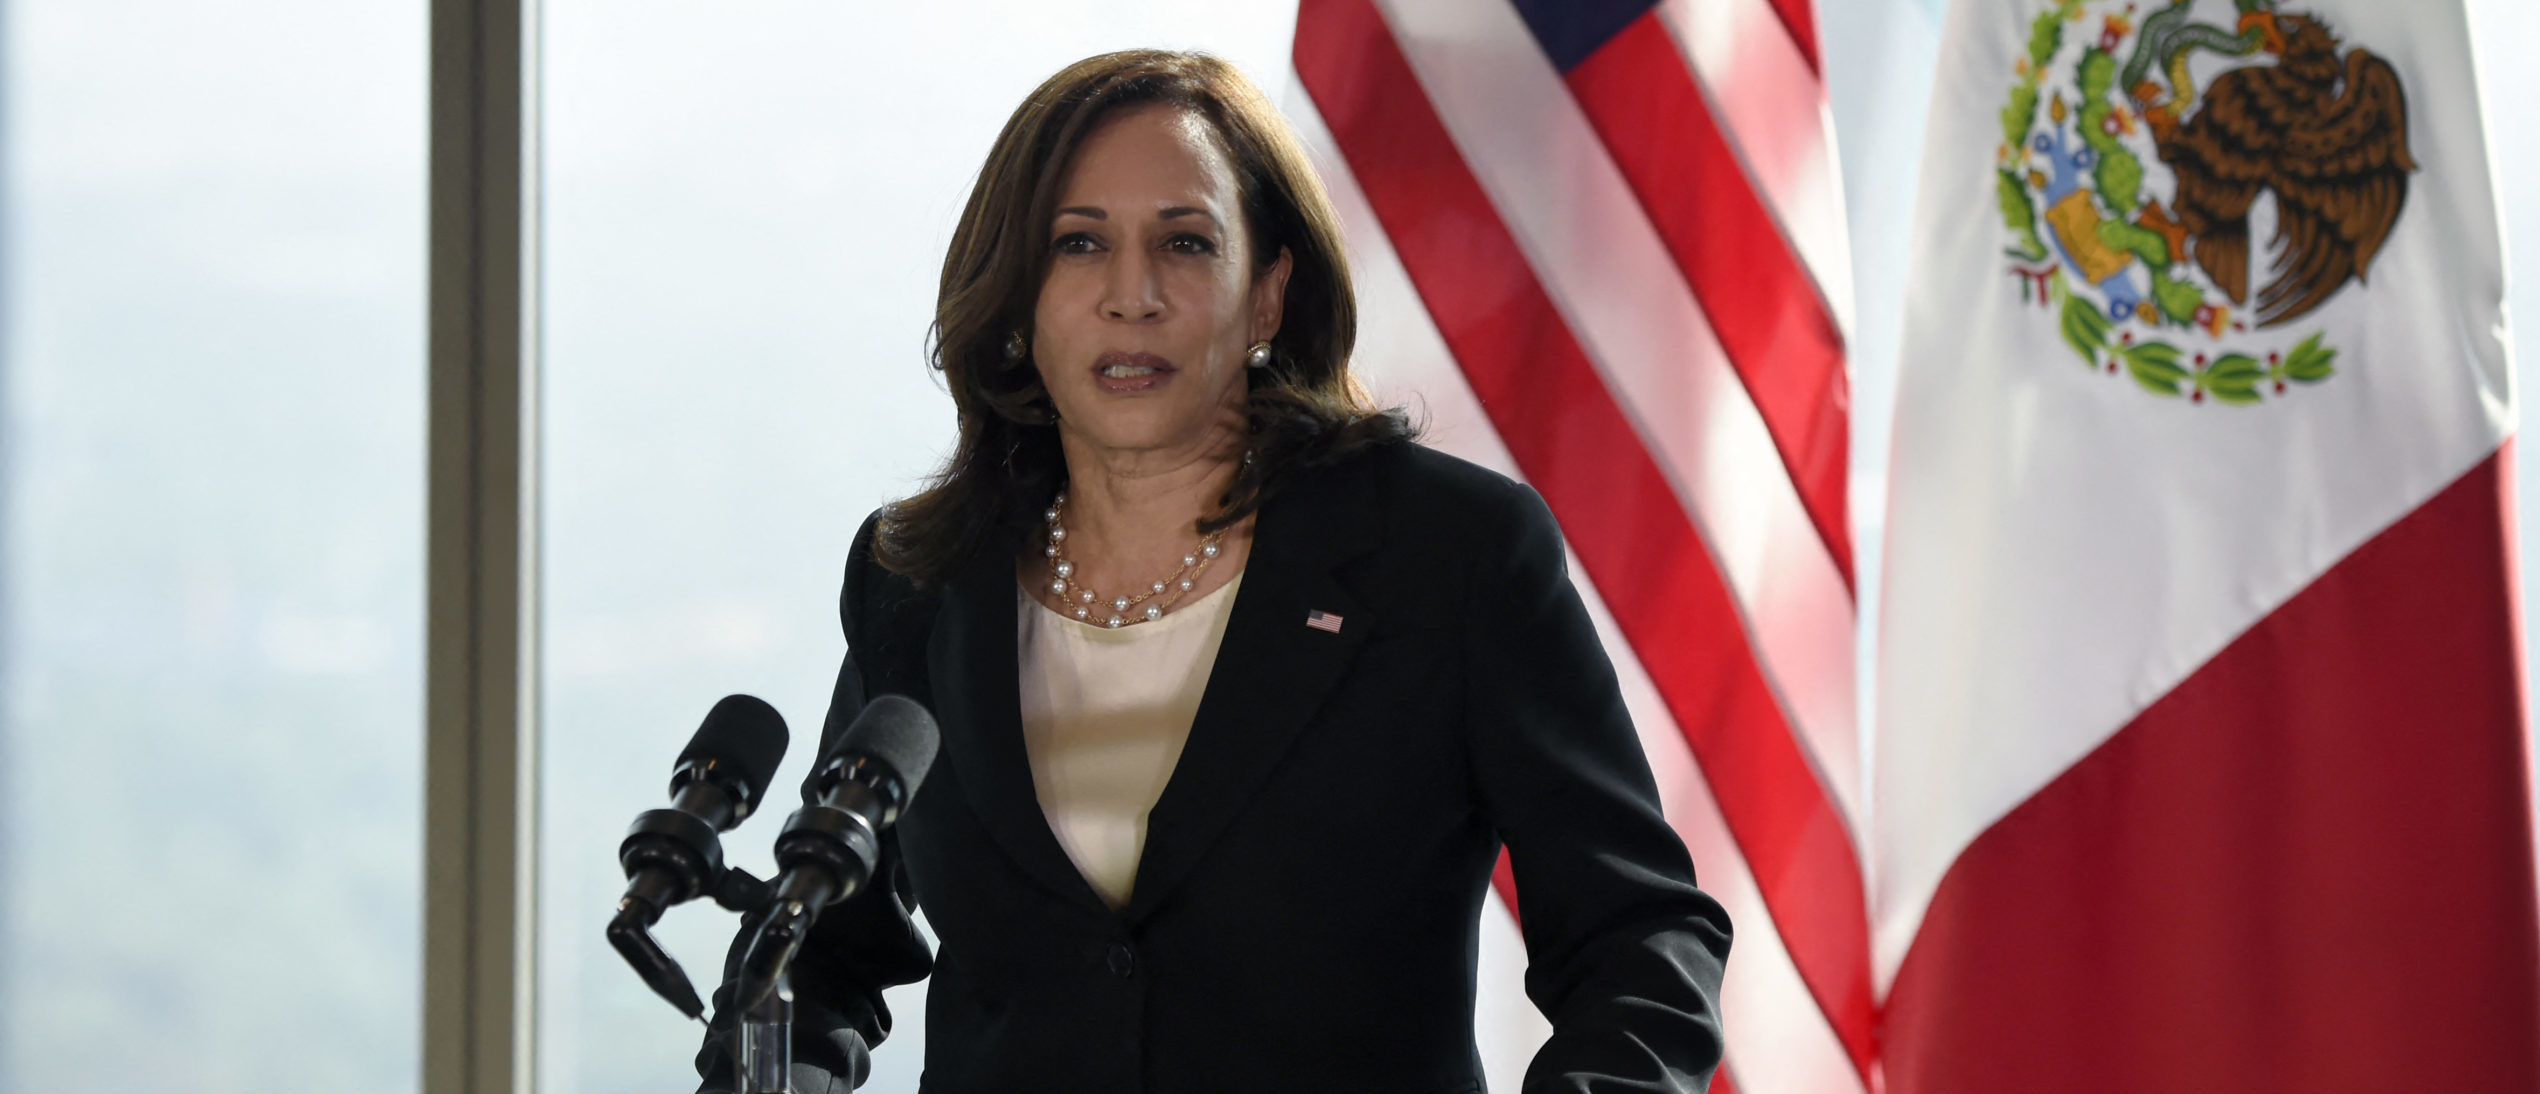 """US Vice President Kamala Harris speaks during a press conference in Mexico City, on June 8, 2021. - US Vice President Kamala Harris held talks with Mexican President Andres Manuel Lopez Obrador Tuesday during a visit to the region aimed at tackling the """"root causes"""" of a surge in migrant arrivals. (Photo by ALFREDO ESTRELLA / AE / AFP) (Photo by ALFREDO ESTRELLA/AE/AFP via Getty Images)"""